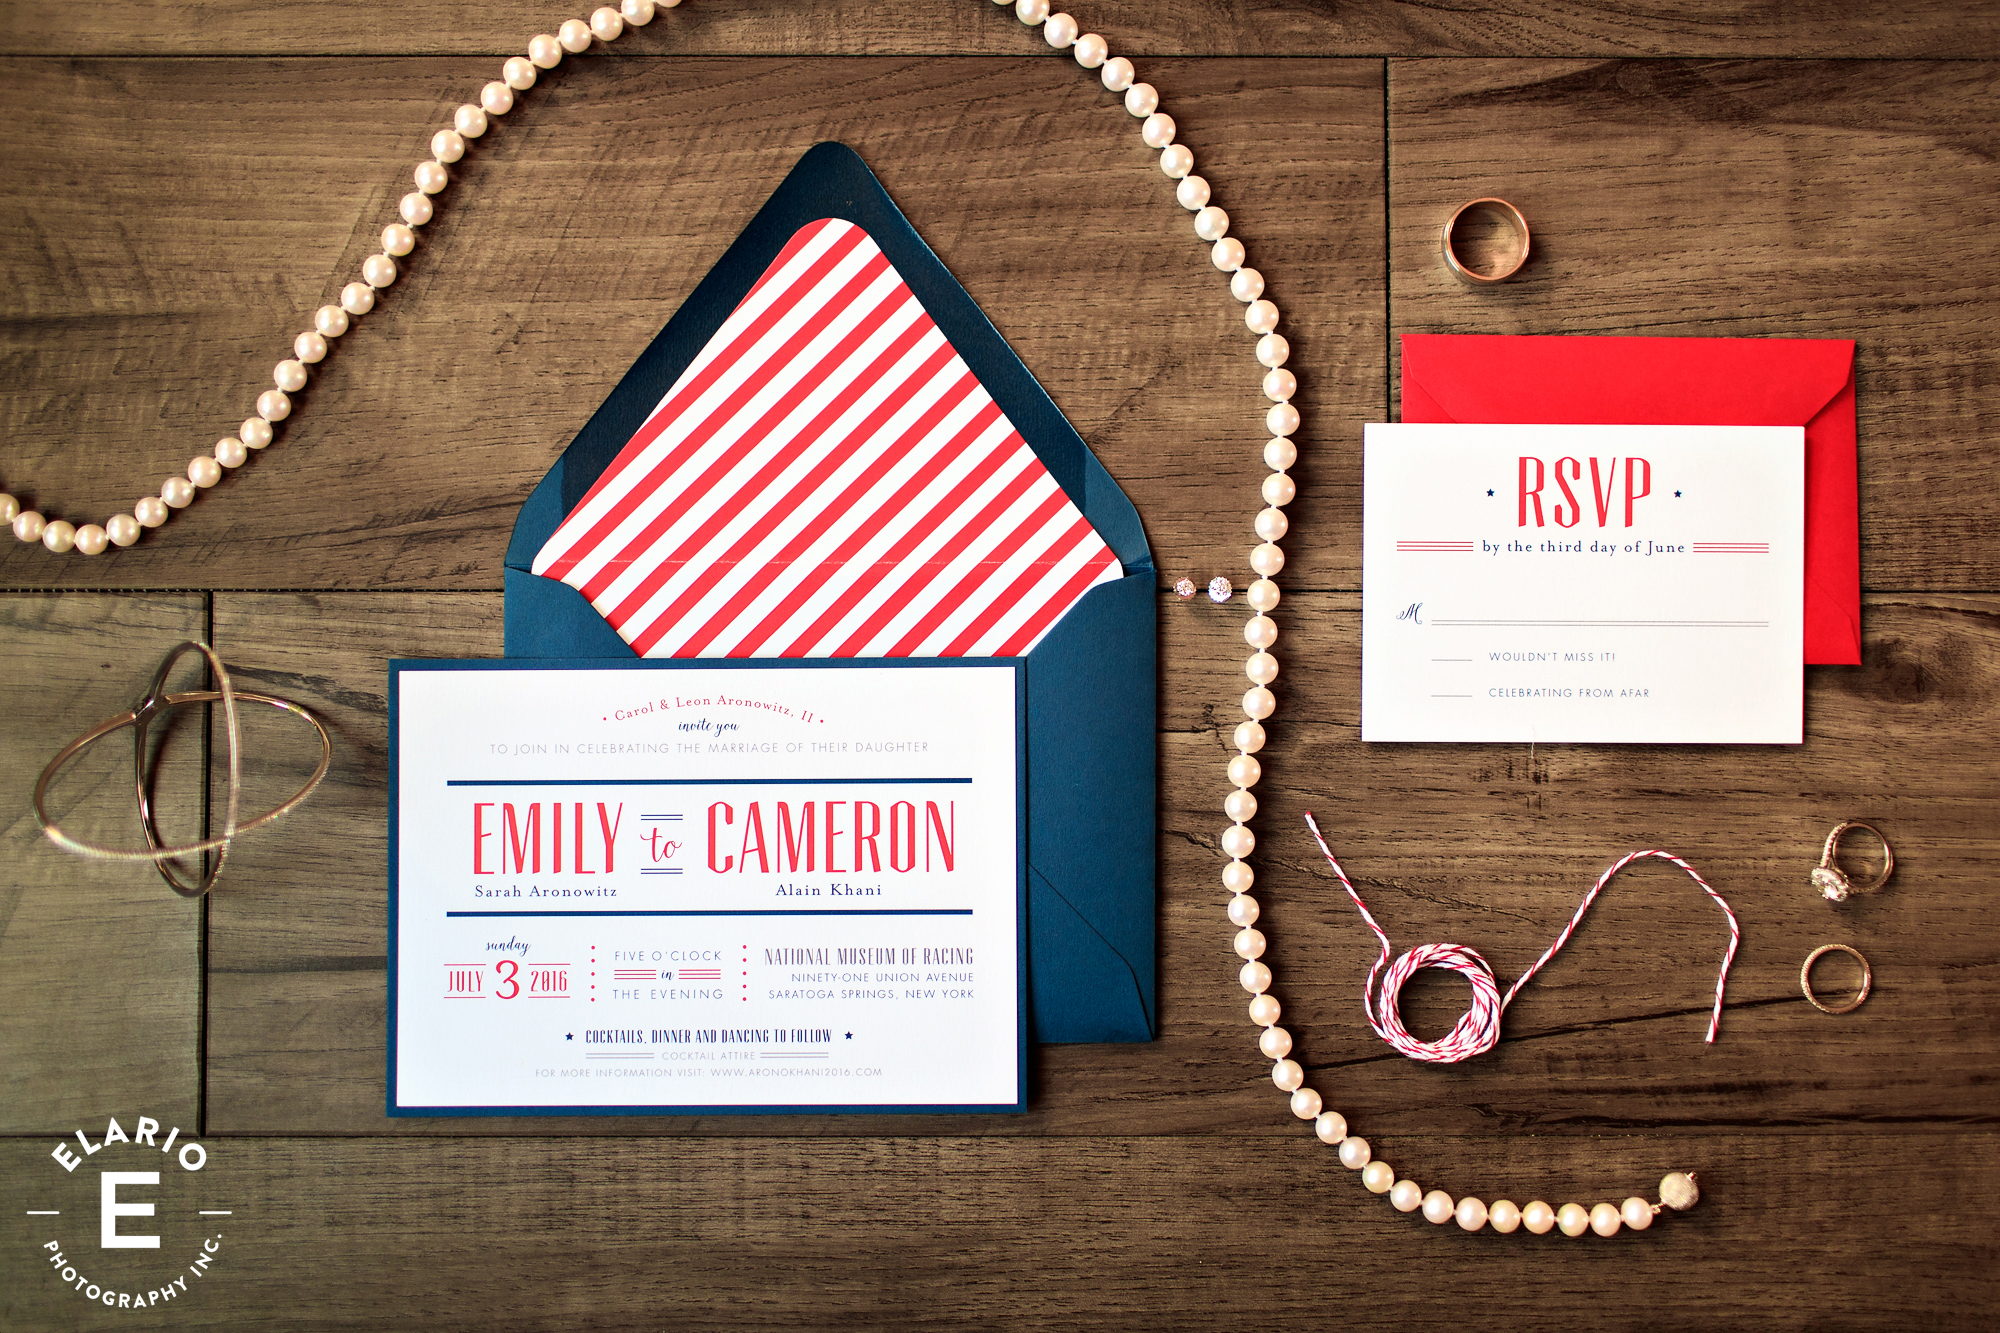 Invitation design by Jenny C Designs